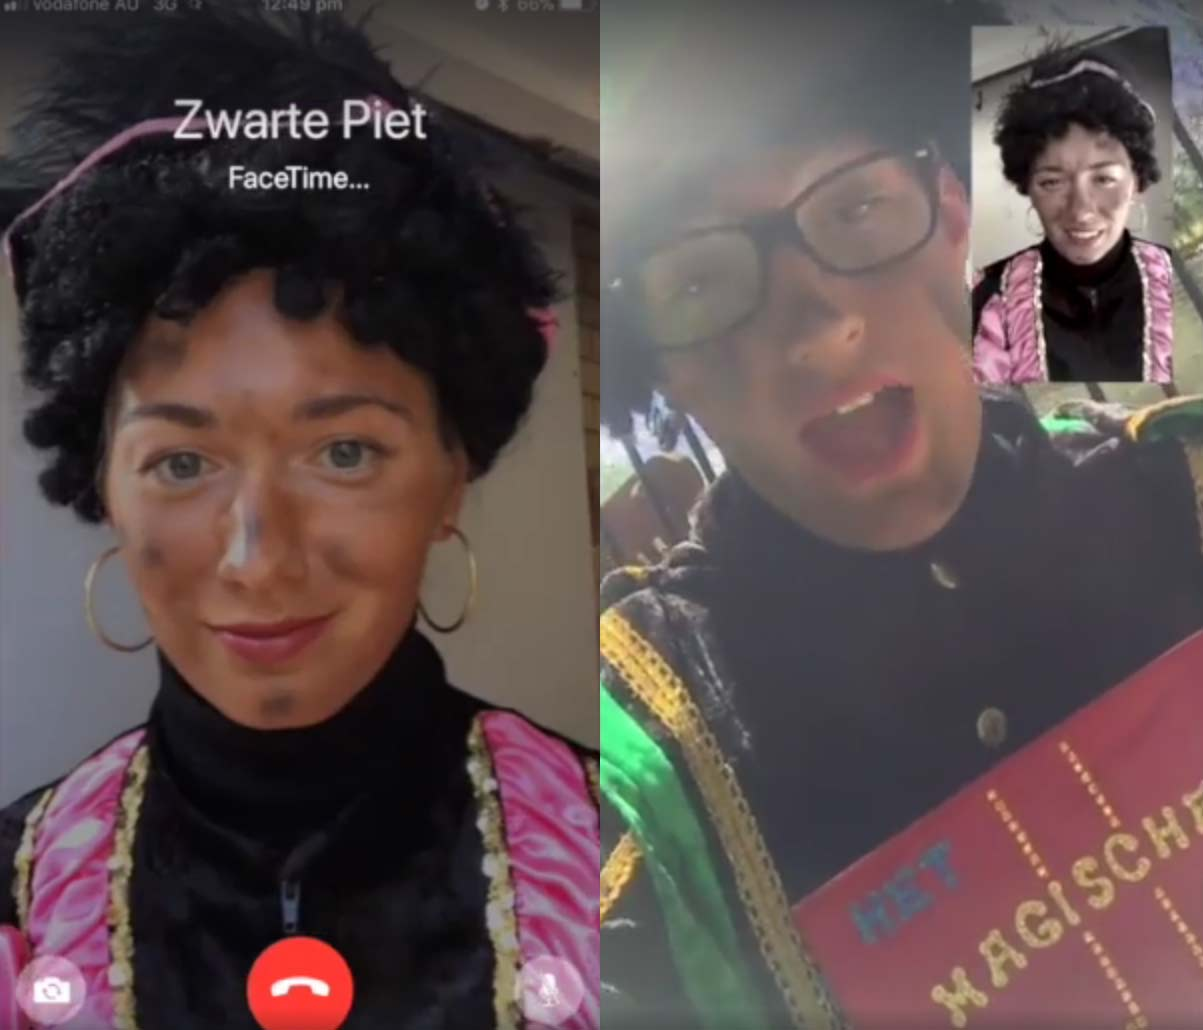 Zwarte Piet do Facetime